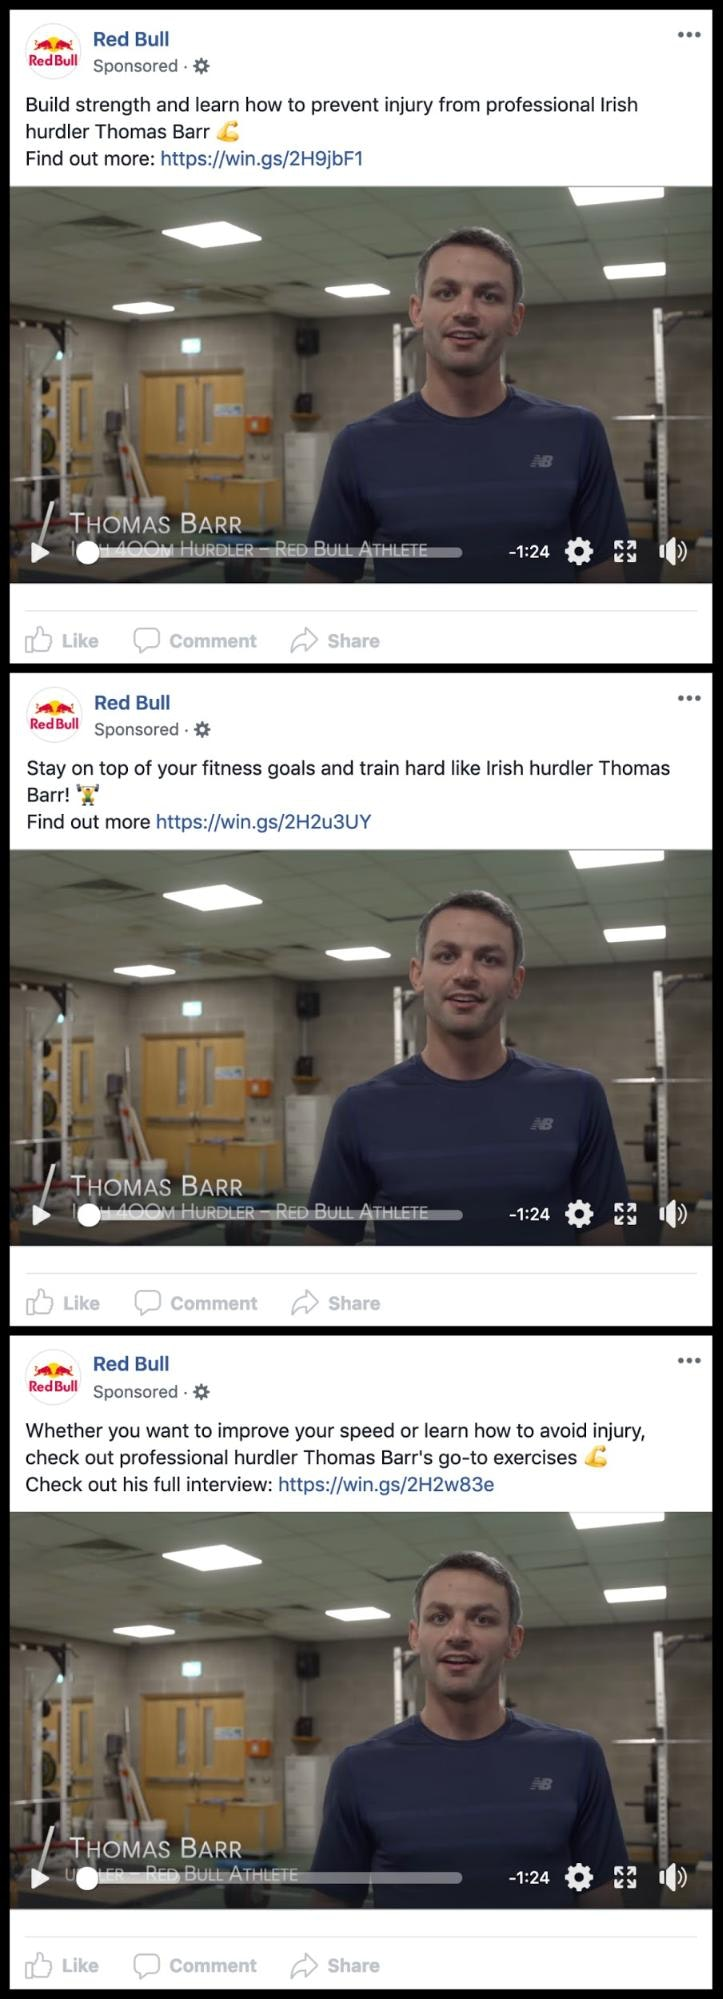 RedBull Facebook Info and Ads